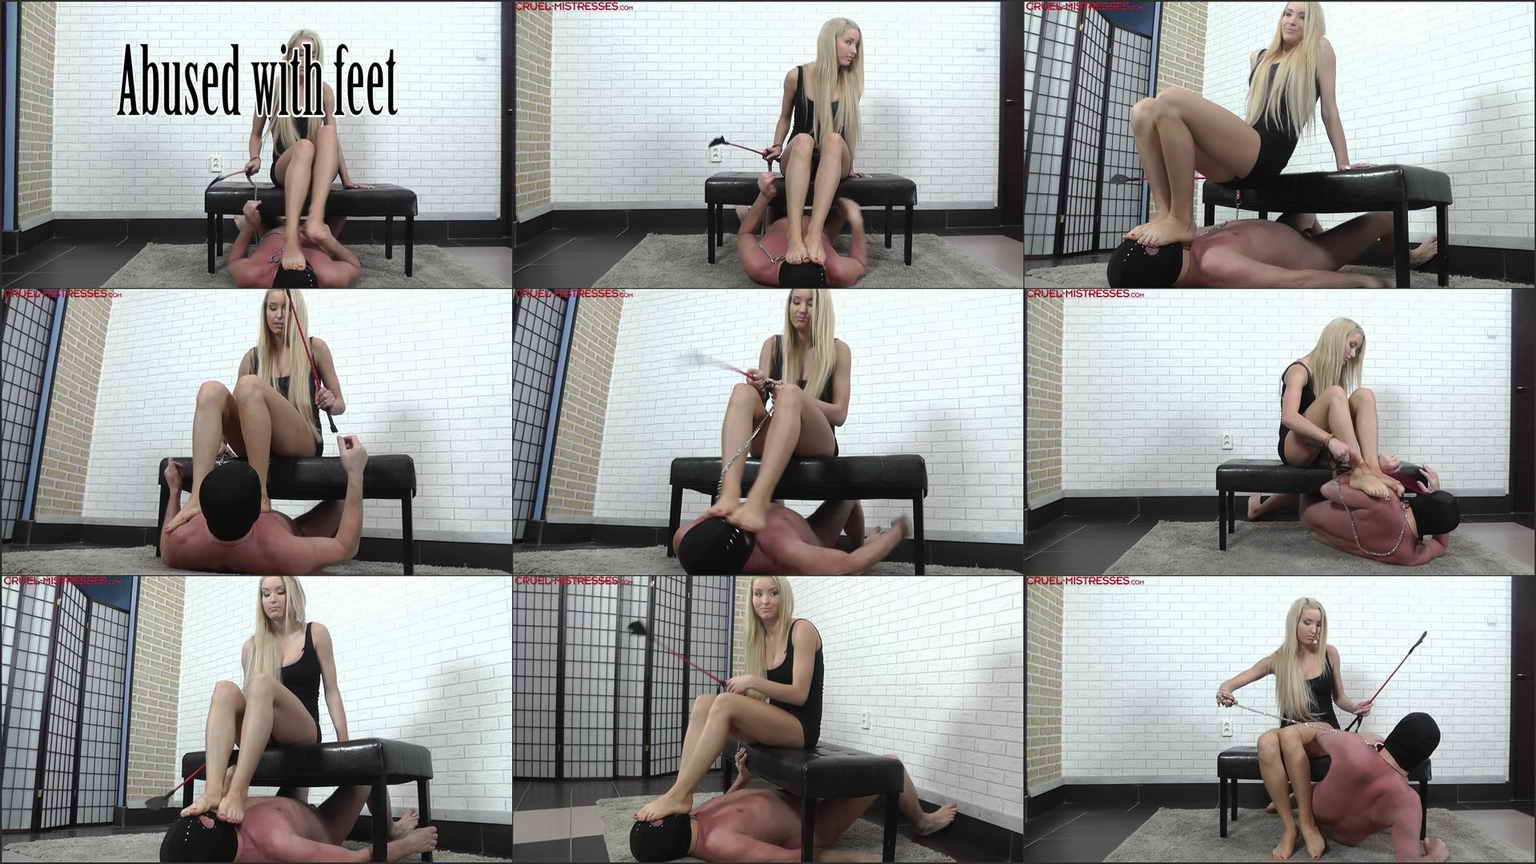 Mistress Ariel Barefoot Abused With Feet at Feet & Boots ...